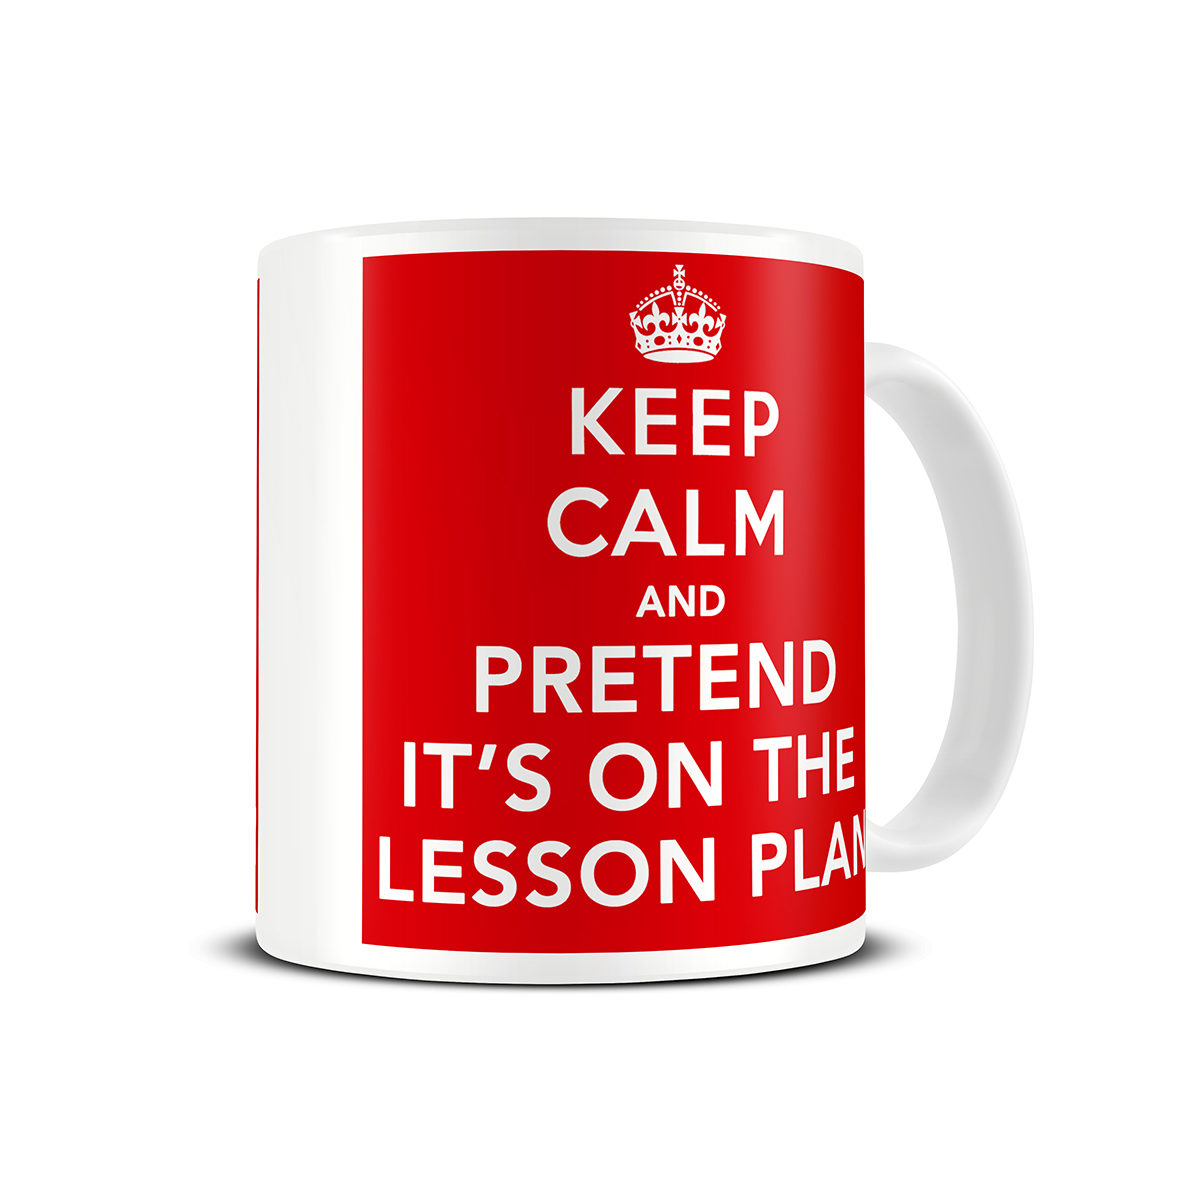 keep-calm-pretend-its-on-the-lesson-plan-teacher-gift-mug